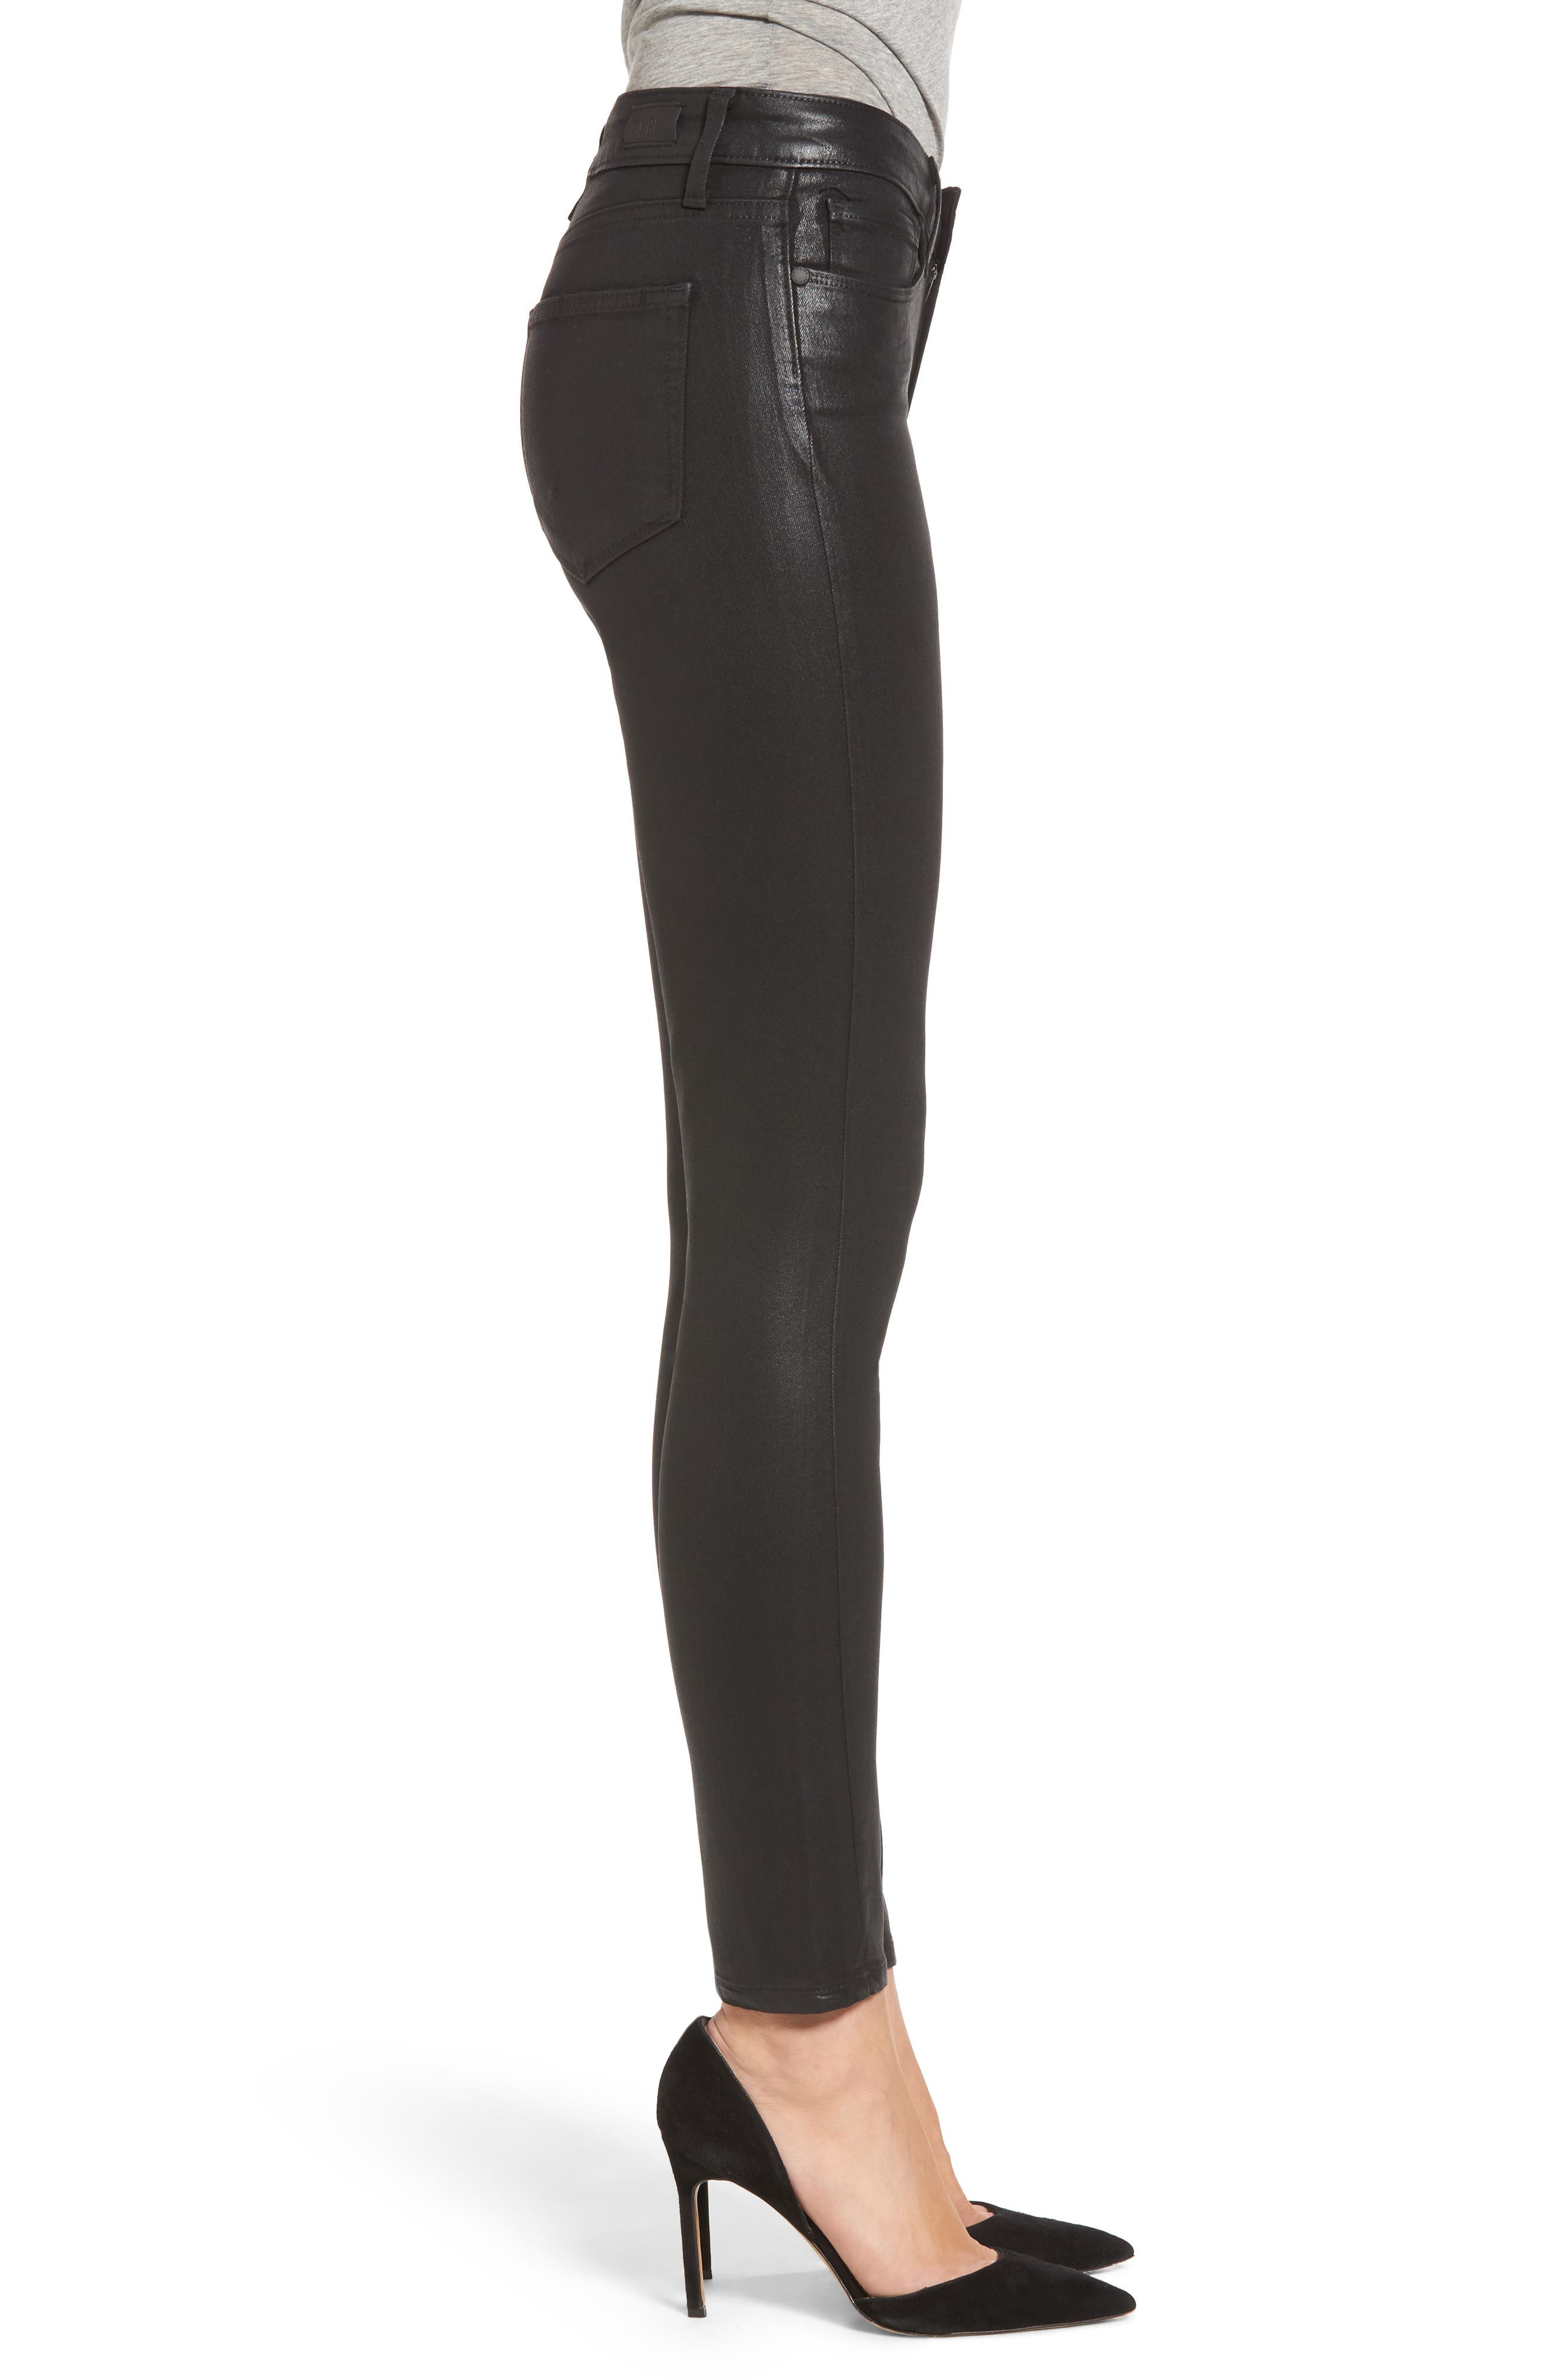 Transcend - Hoxton High Waist Ankle Skinny Jeans,                             Alternate thumbnail 3, color,                             LUXE BLACK COATED